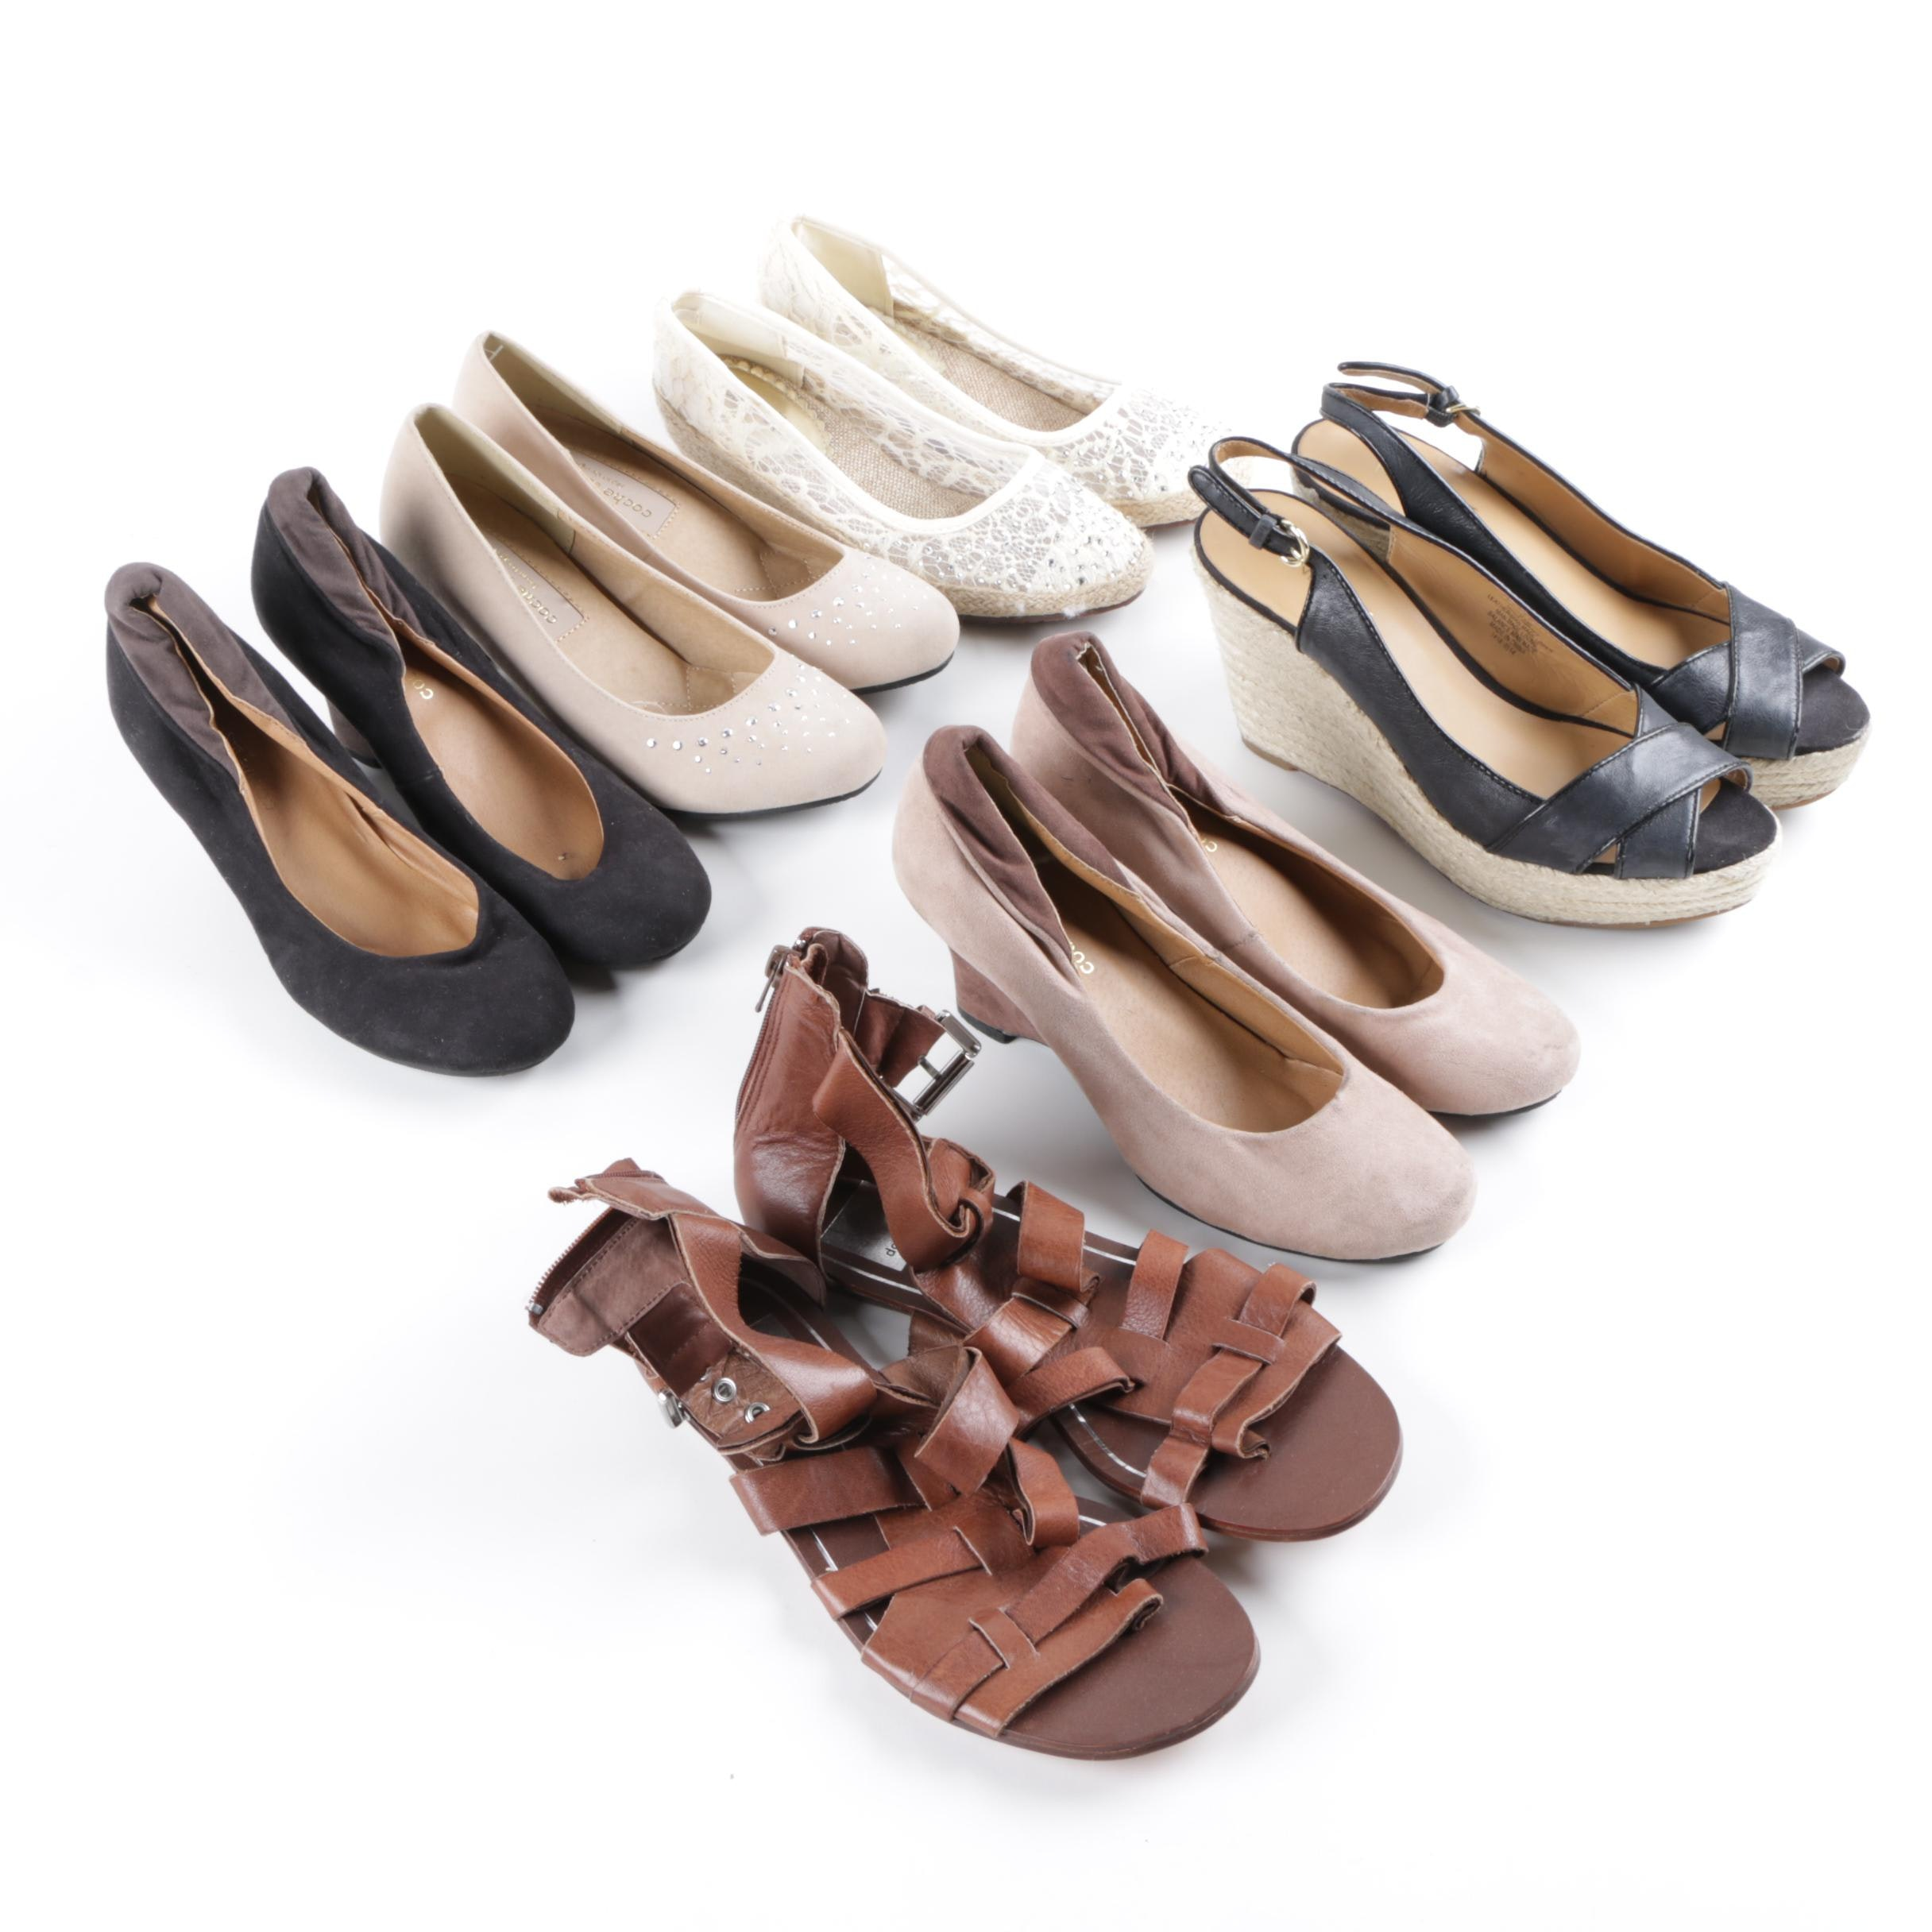 Women's Contemporary Pumps and Wedges Including Coche et Coche and Dolce Vita